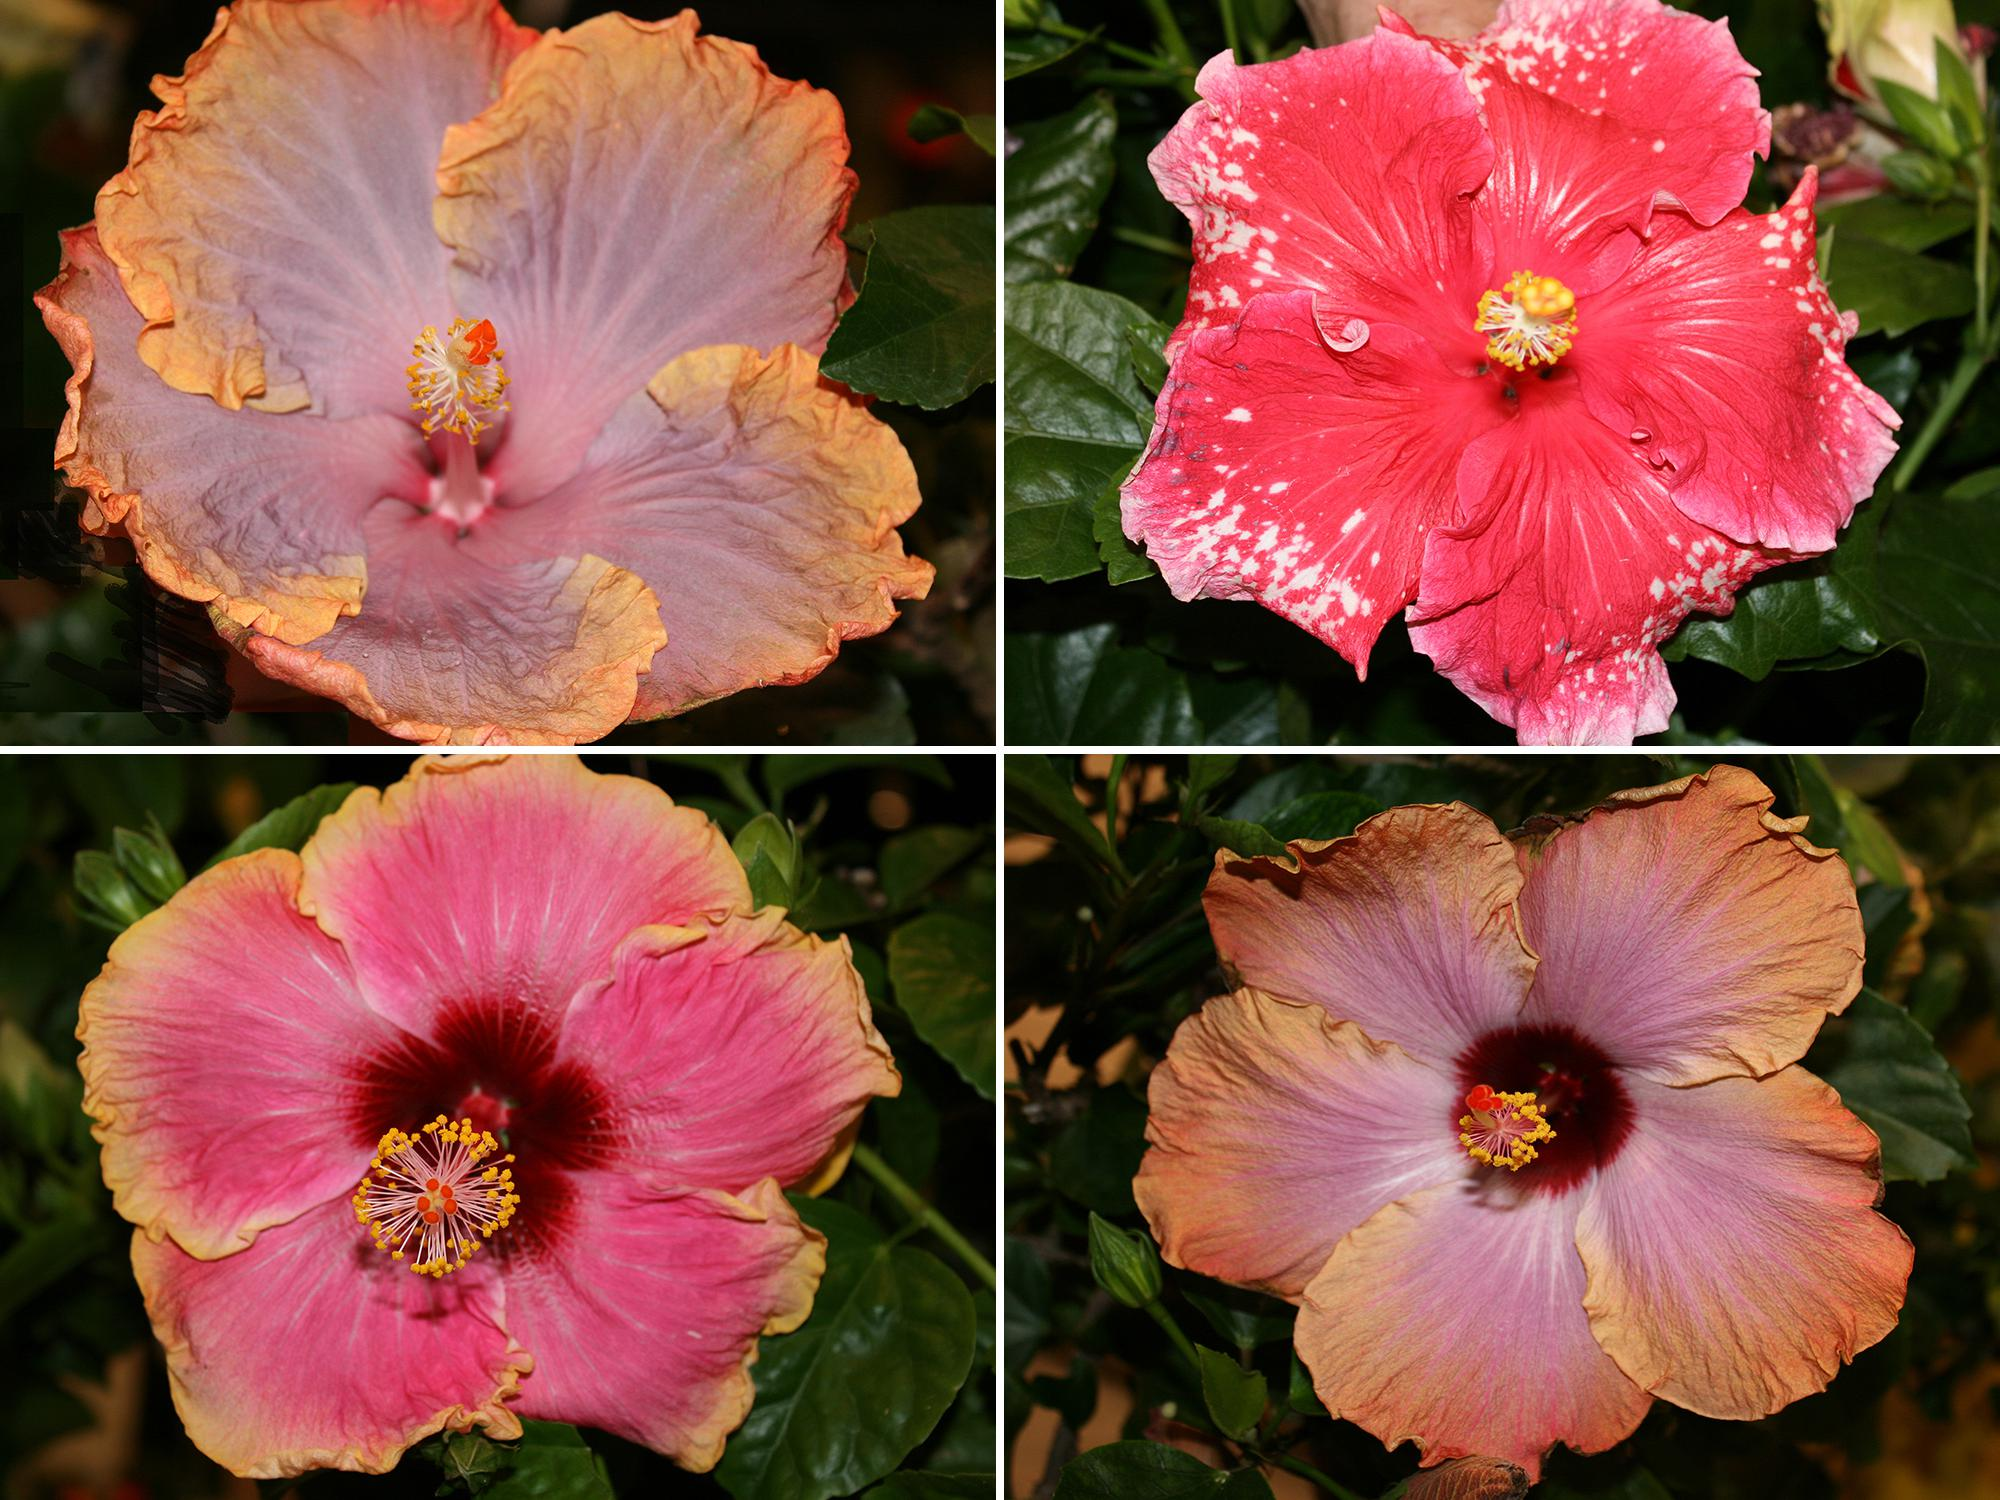 Tropical hibiscus, such as this Cajun Creole Lady (top left), require consistent moisture. Although Cajun Peppermint Patty (top right) flowers bloom for just one day, the plants produce flowers from spring until fall. Tropical hibiscus, such as this Cajun Dixieland Delight (bottom left), produce flowers with spectacular colors and combinations. The dark green and glossy foliage of tropical hibiscus such as this Cajun Rum Runner (bottom right) provides a nice background for the colorful blooms.